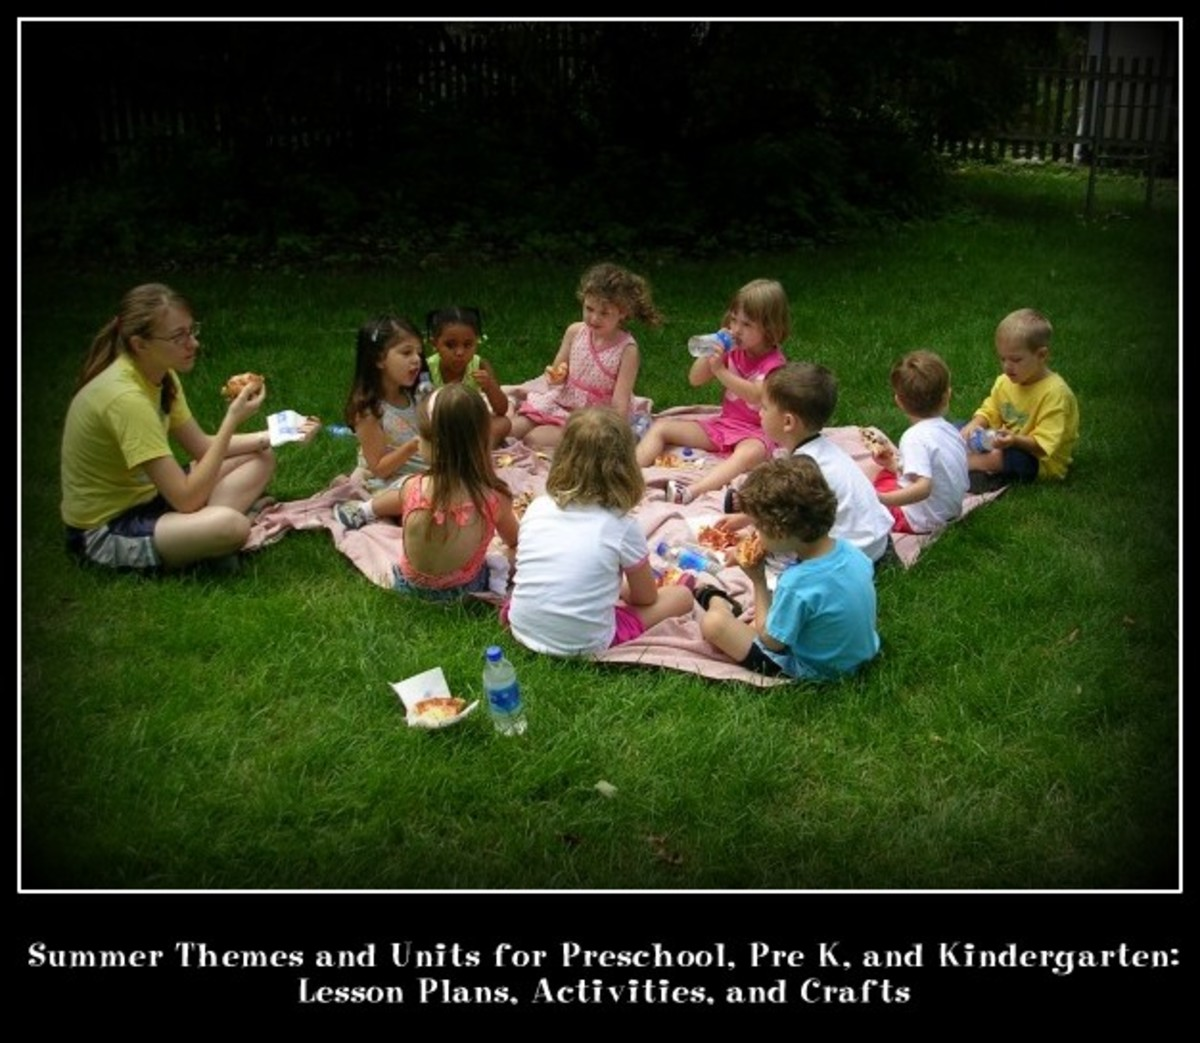 Summer Themes and Units for Preschool, Pre K, and Kindergarten: Lesson Plans, Activities, and Crafts